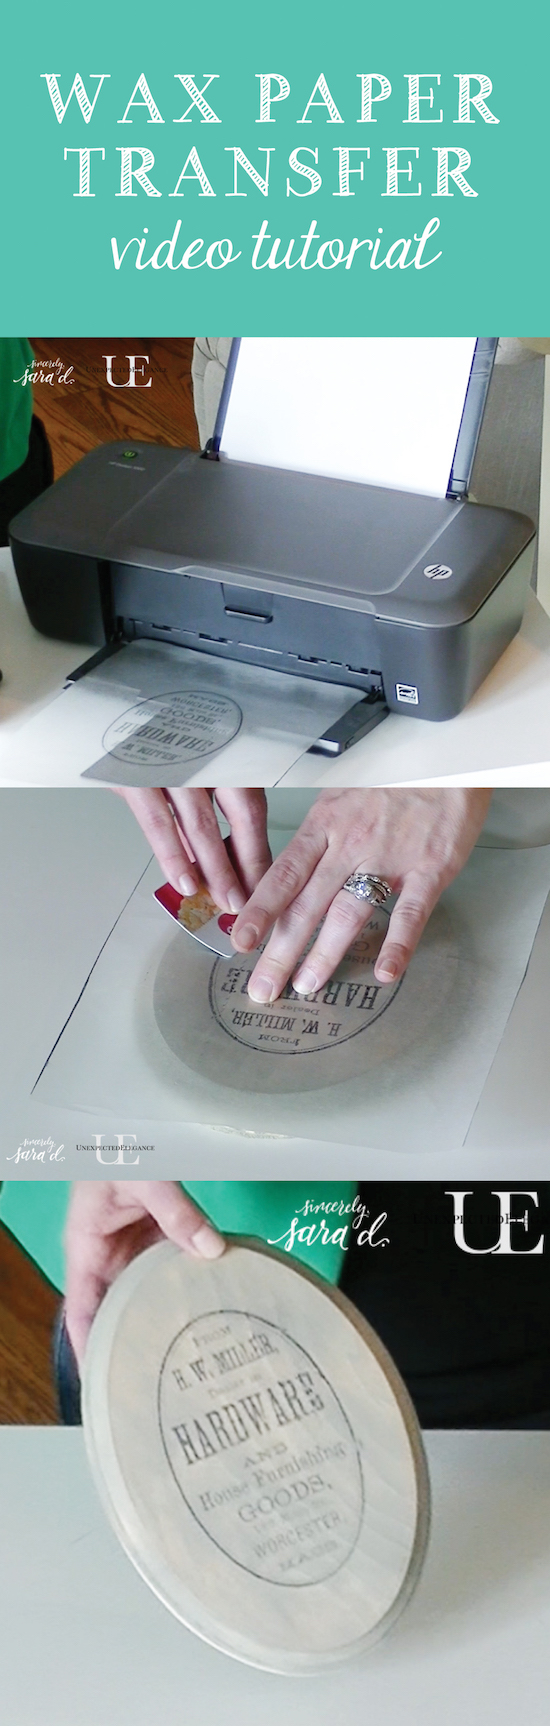 wax paper image transfer tutorial video how to flip an